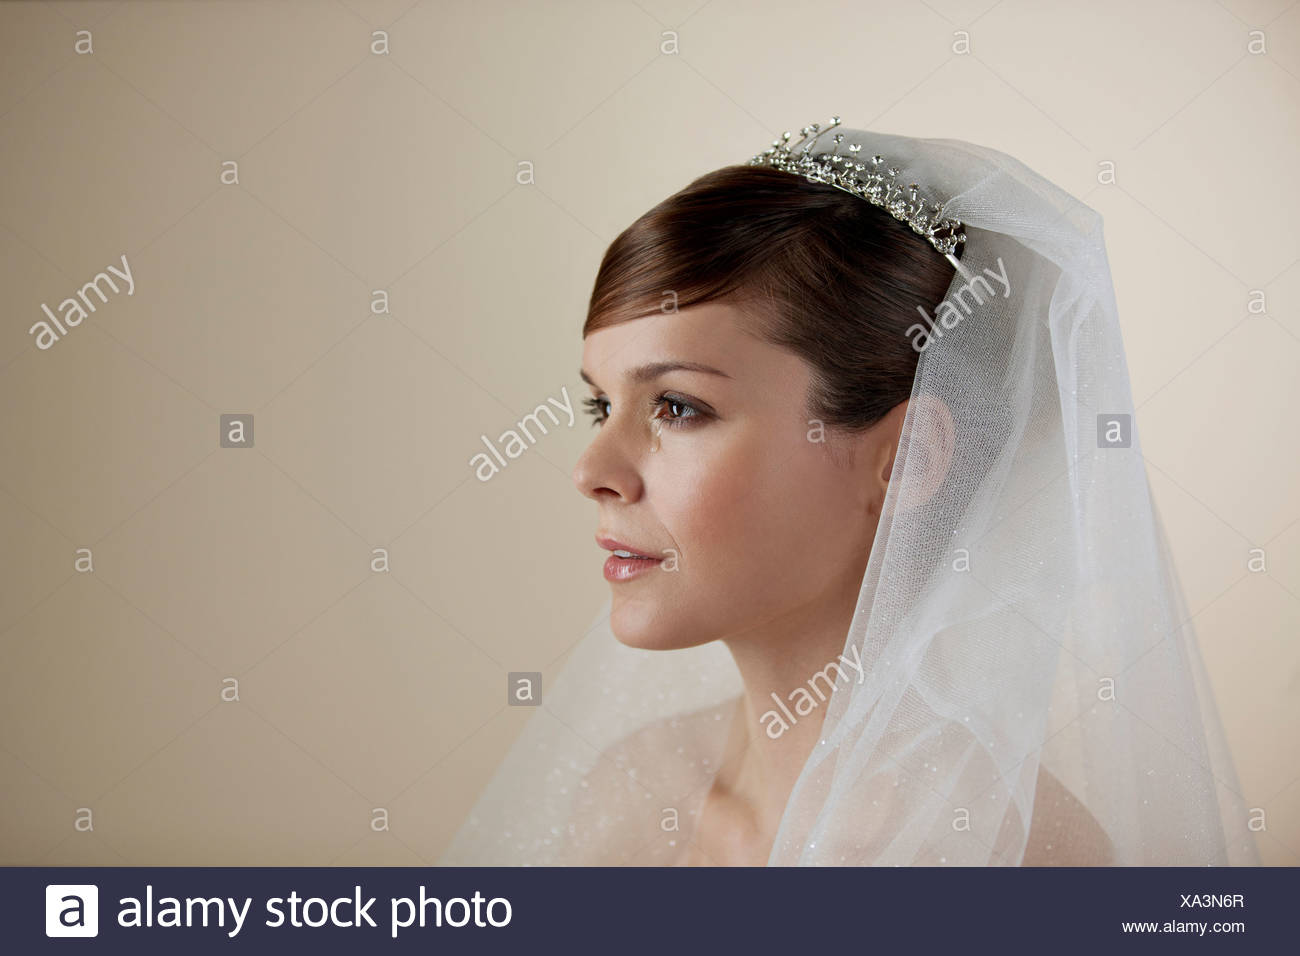 A young bride with a tear running down her face - Stock Image